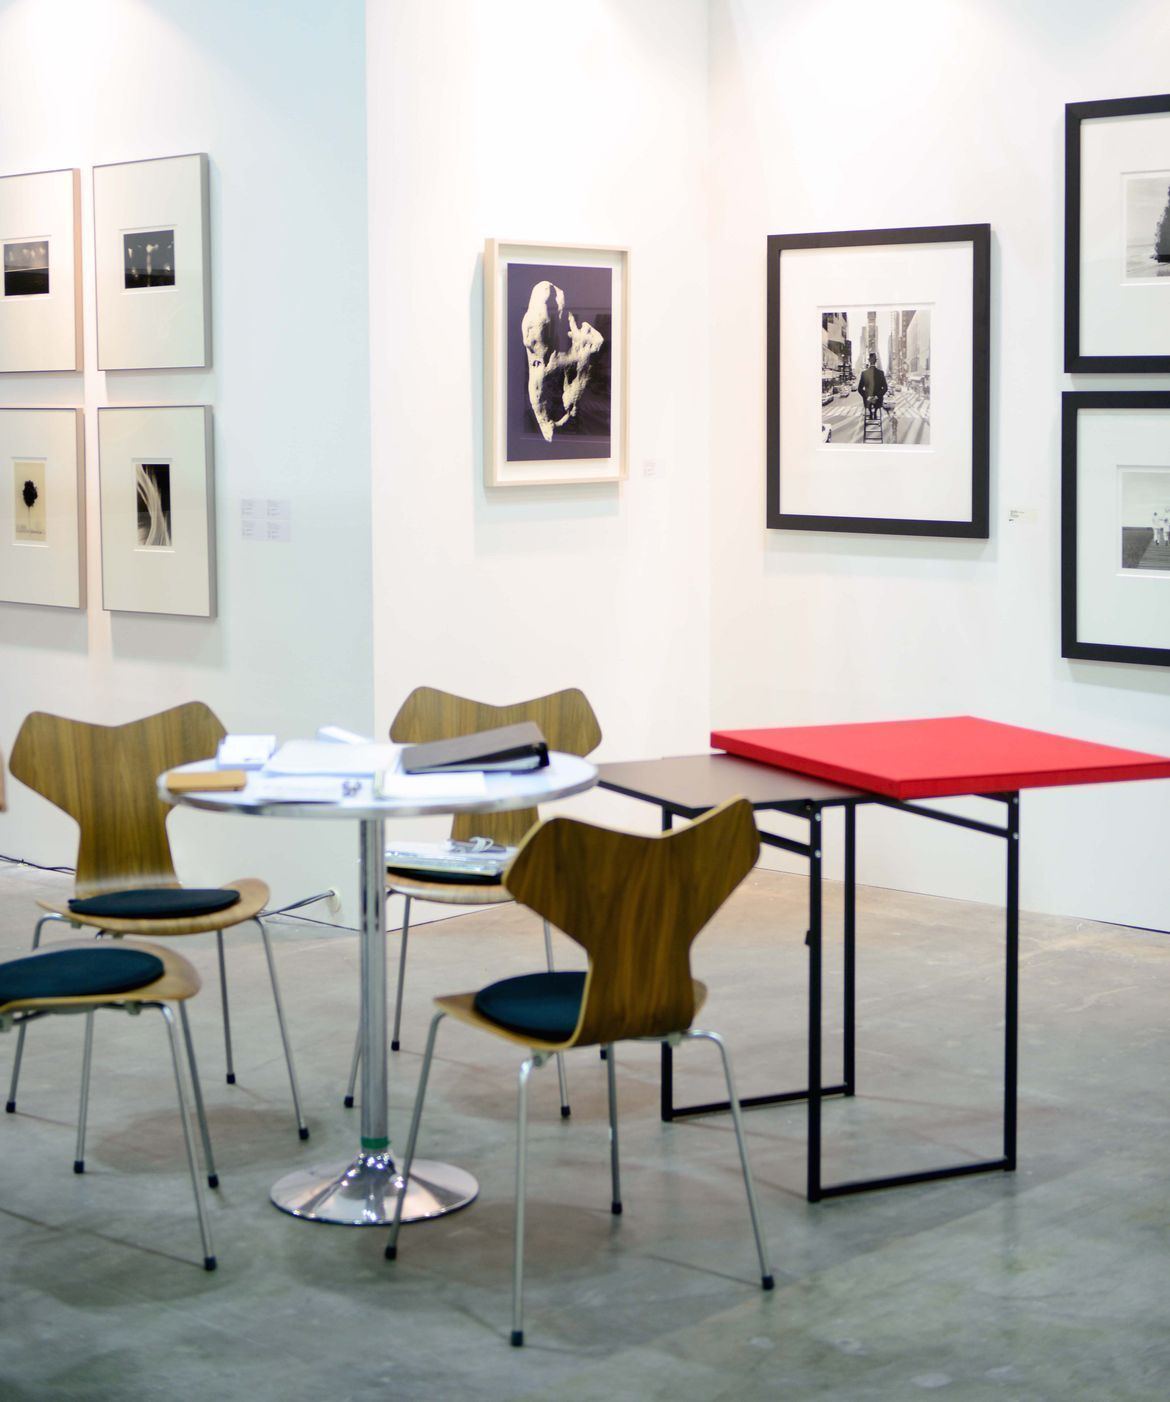 Contemporary Art, Photography, and Home Decor at the Milan Image Art & Design Fair